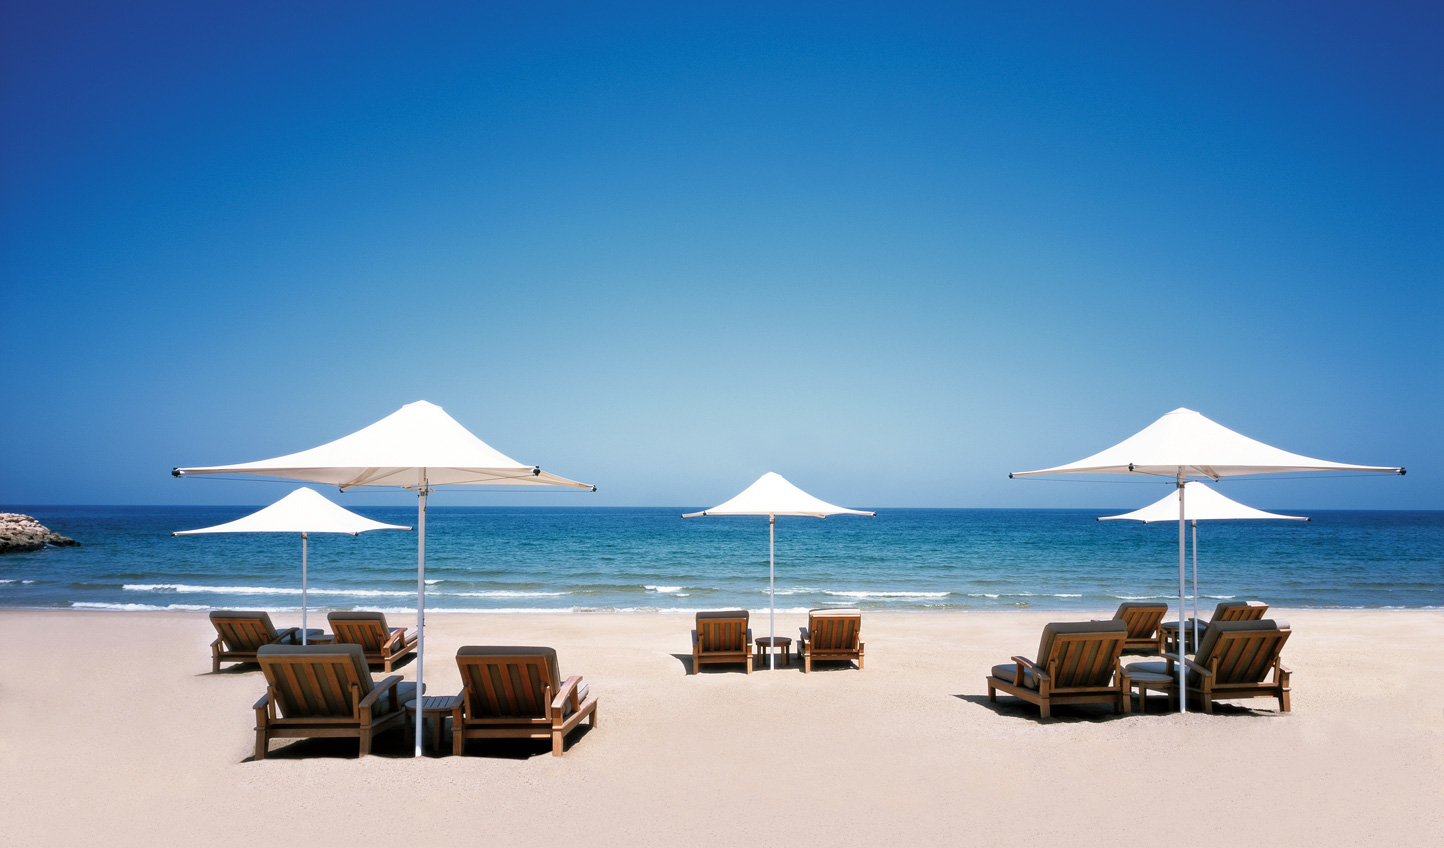 Spend the last few days with your toes in the sand at Shangri La Al Waha